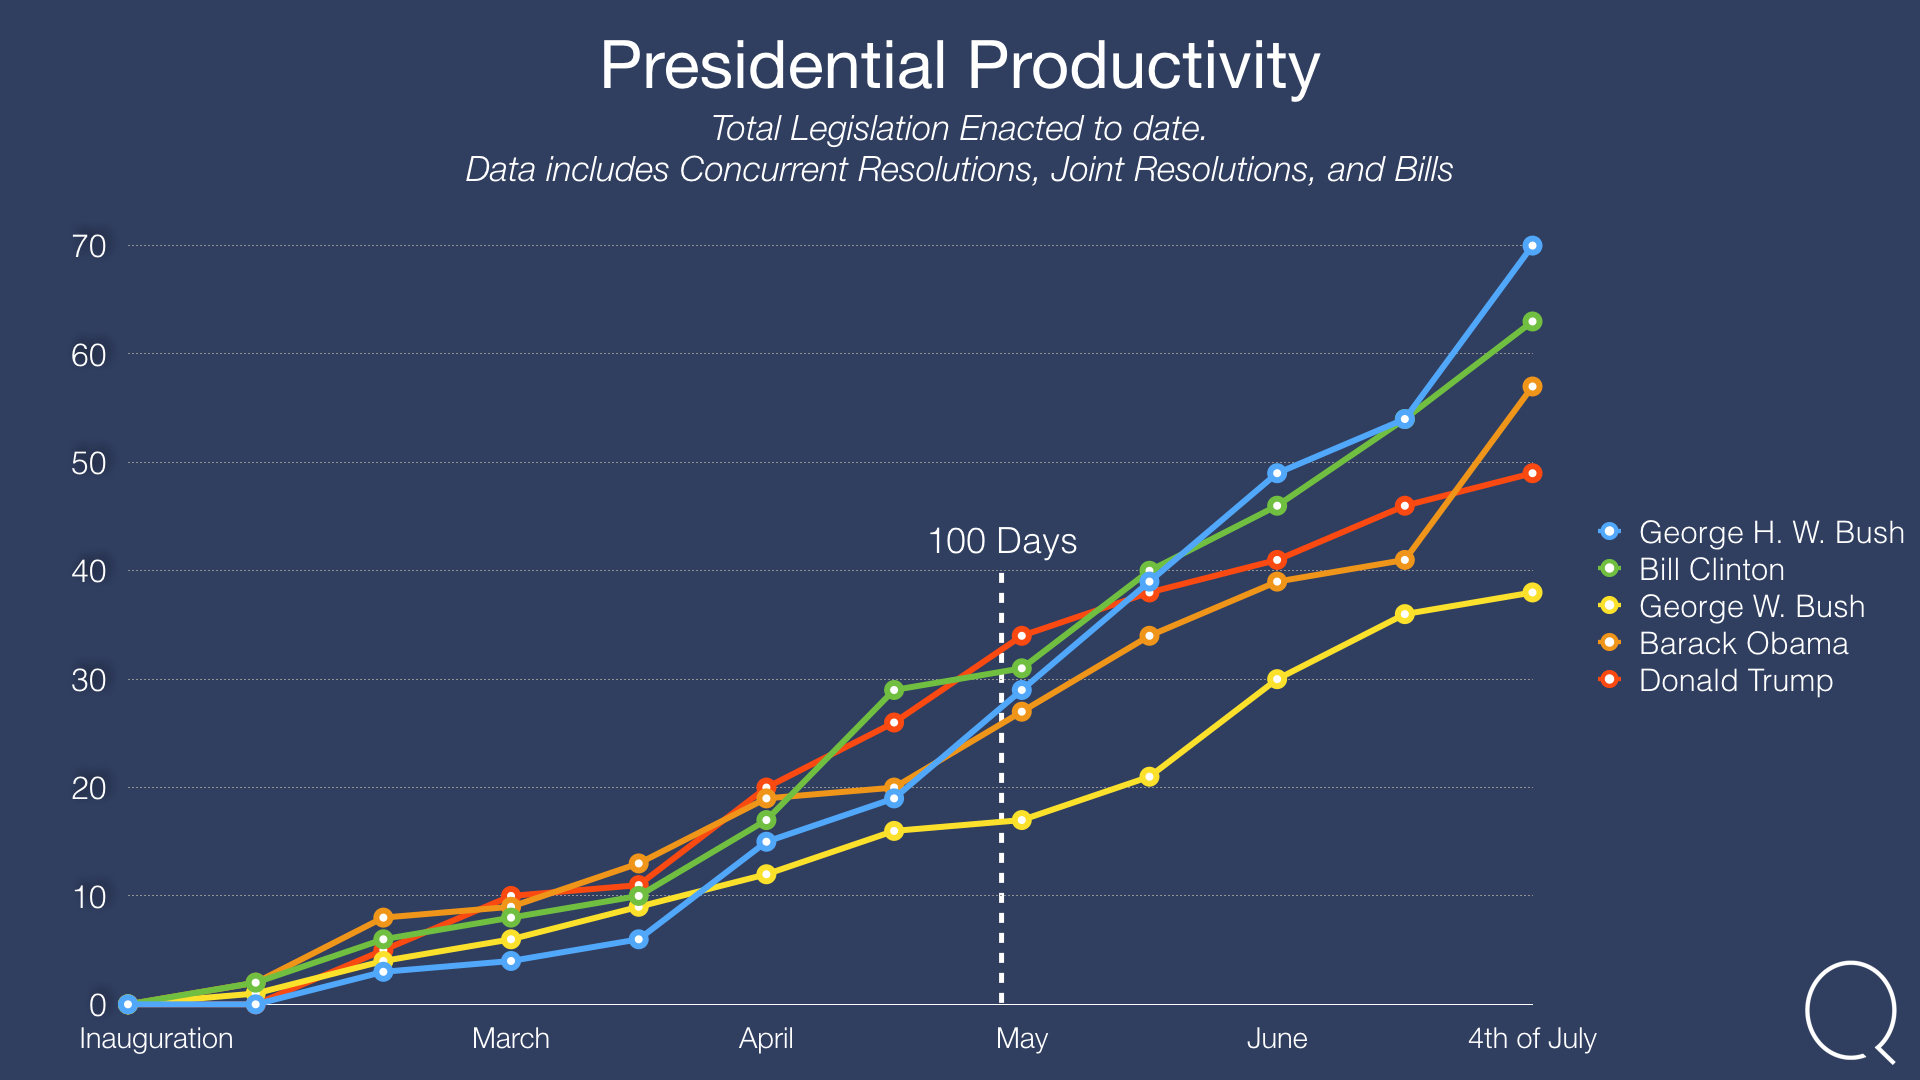 Professional Productivity: Total Legislation Enacted to date.